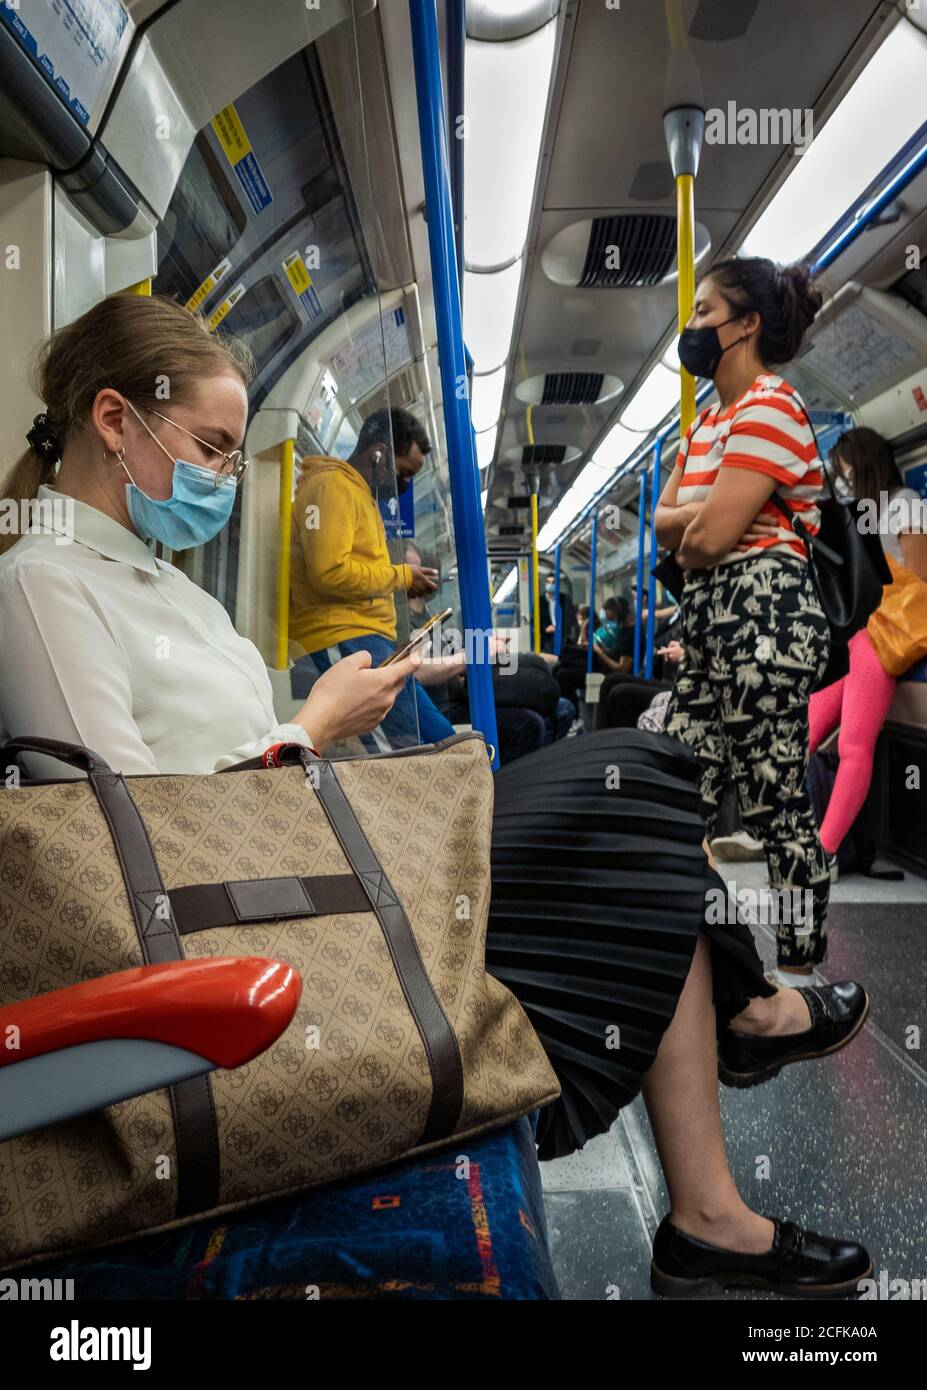 Passengers on the London Underground train carriage wearing face covering and trying to practice social distancing. Stock Photo